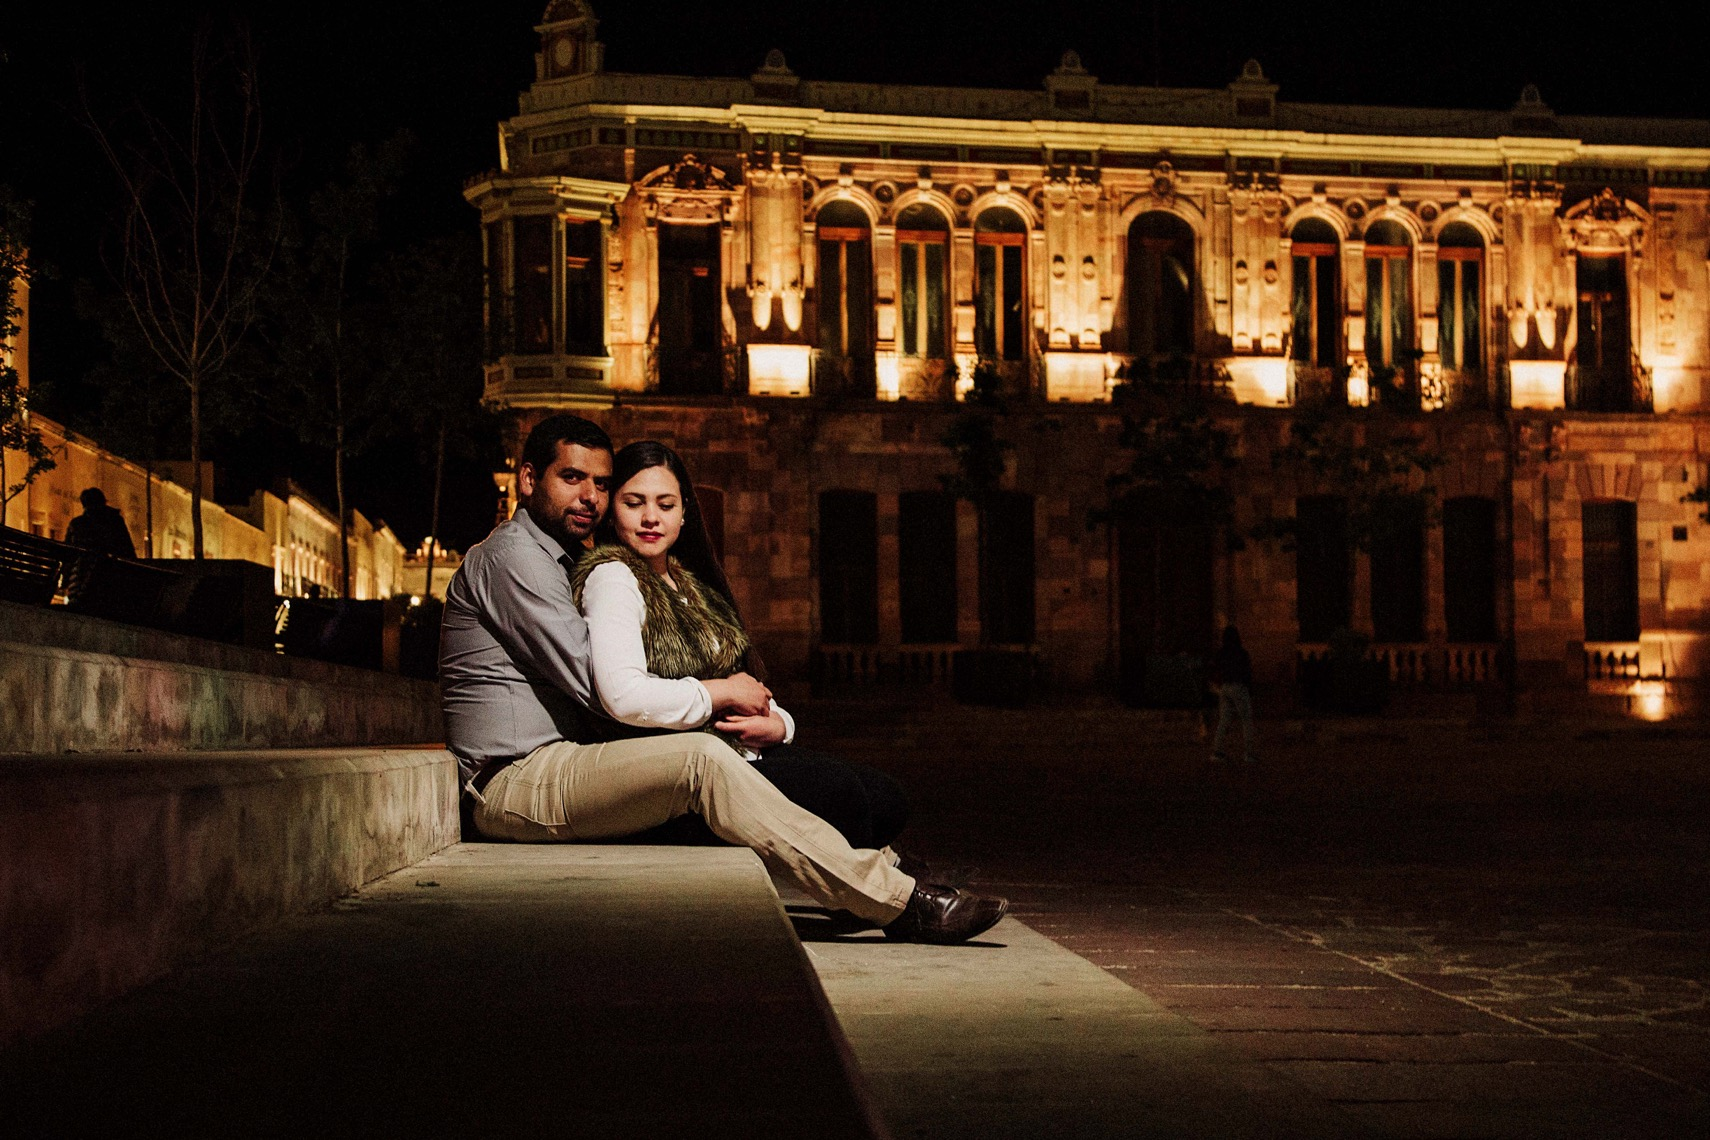 save_the_date_casual_zacatecas_fotografo_profesional_centro_historico-47